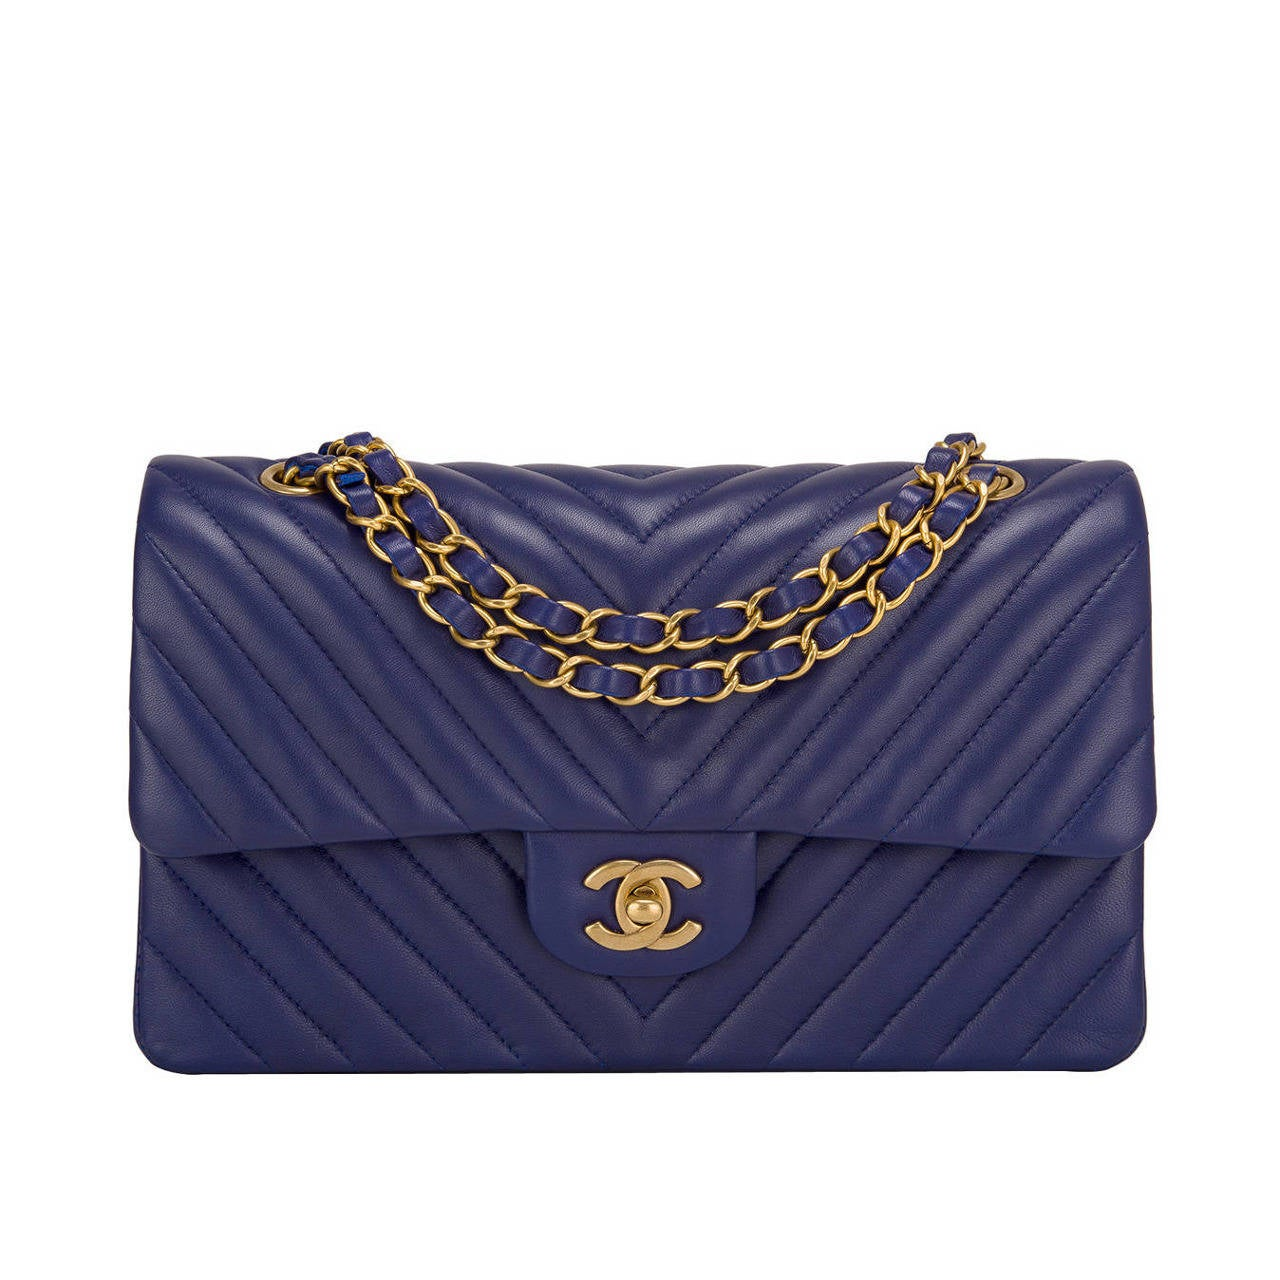 Chanel Blue Chevron Medium Classic Double Flap Bag For Sale